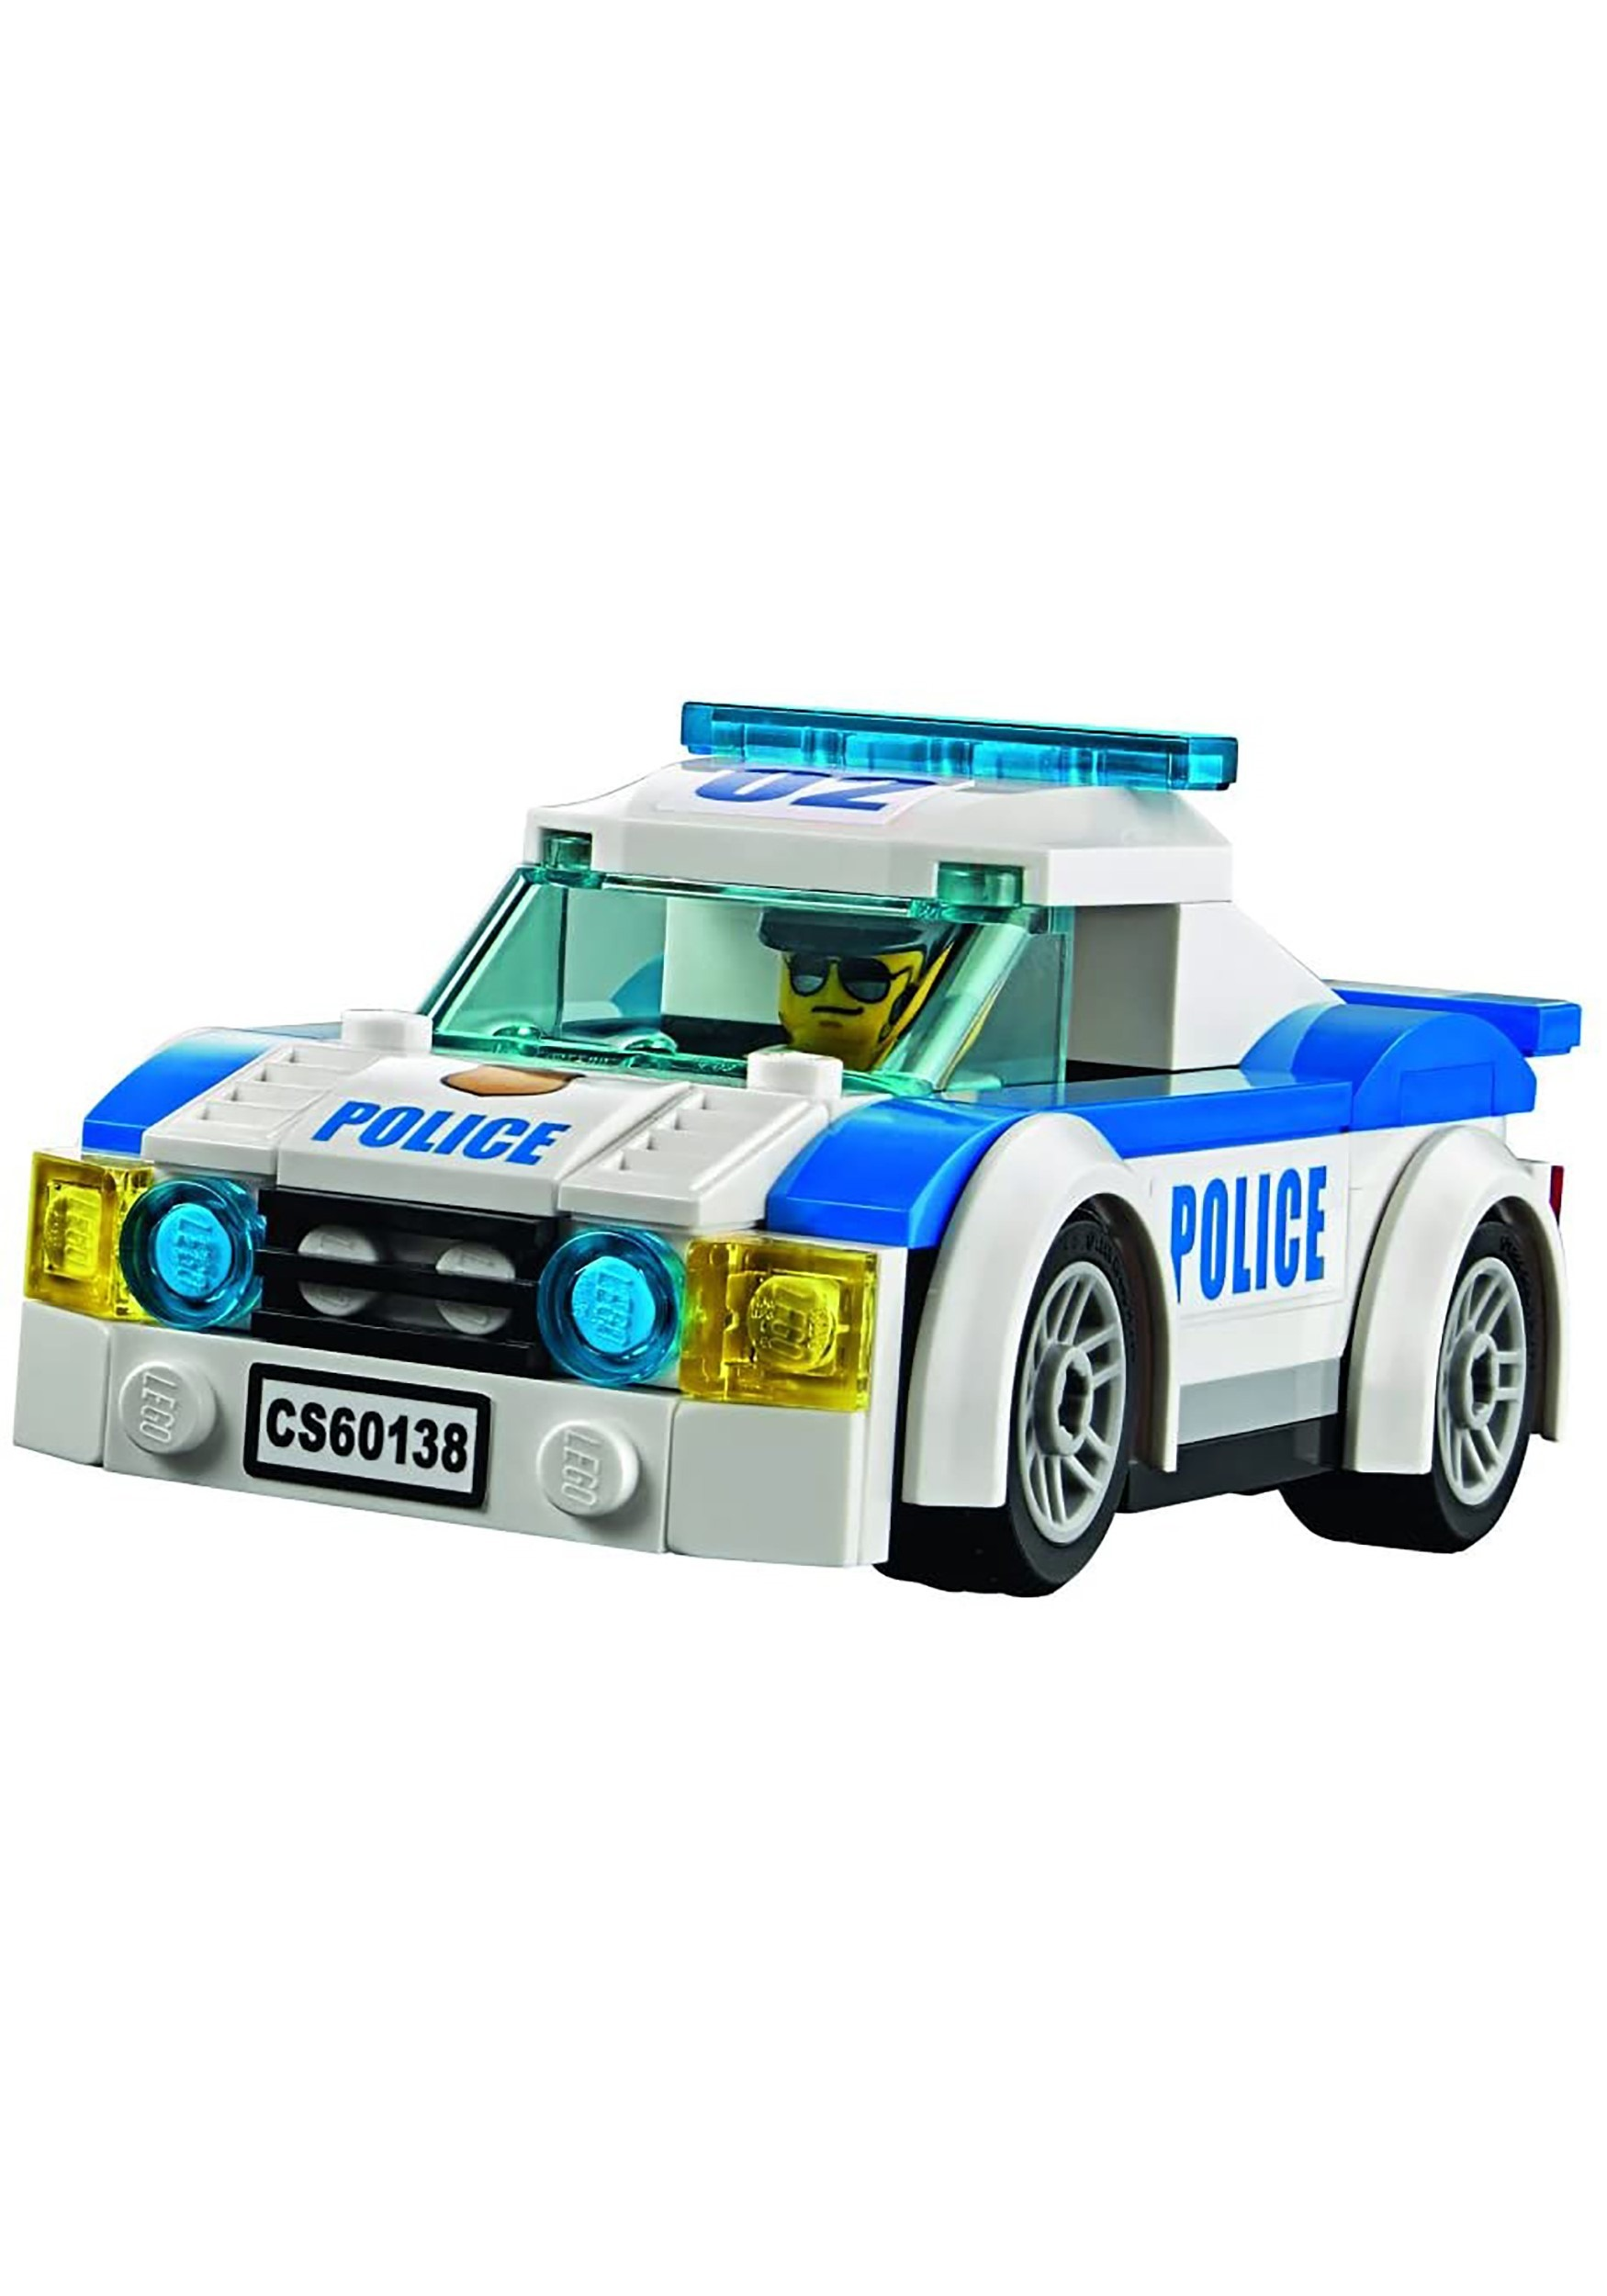 Police High Speed Chase Lego City Building Set